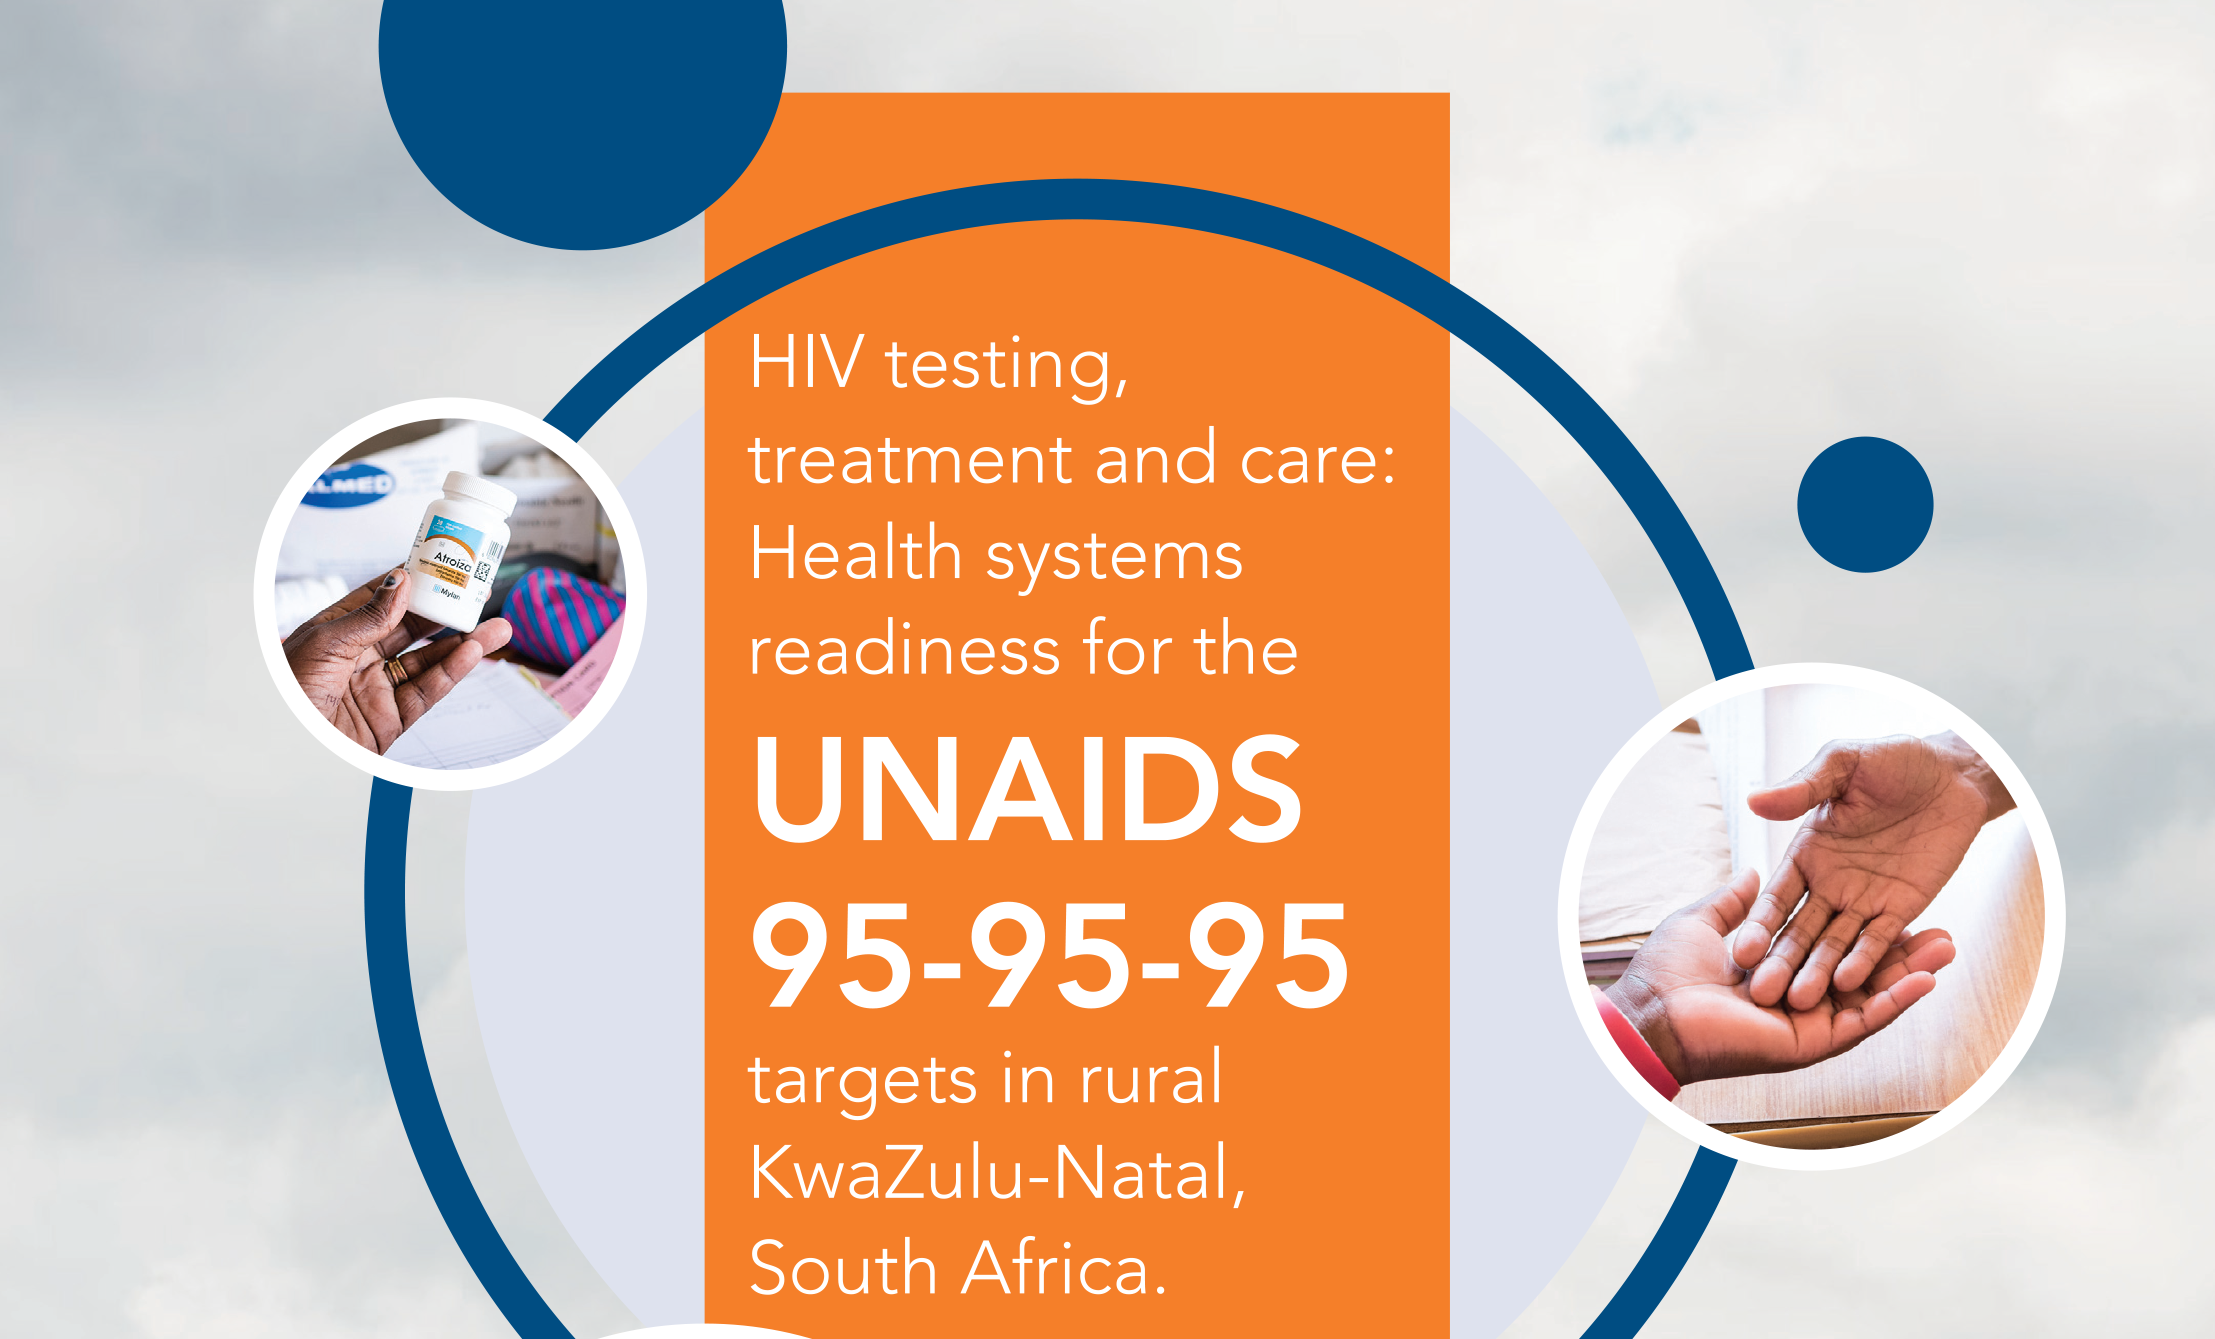 Health systems readiness for the UNAIDS '95' targets in rural KwaZulu-Natal